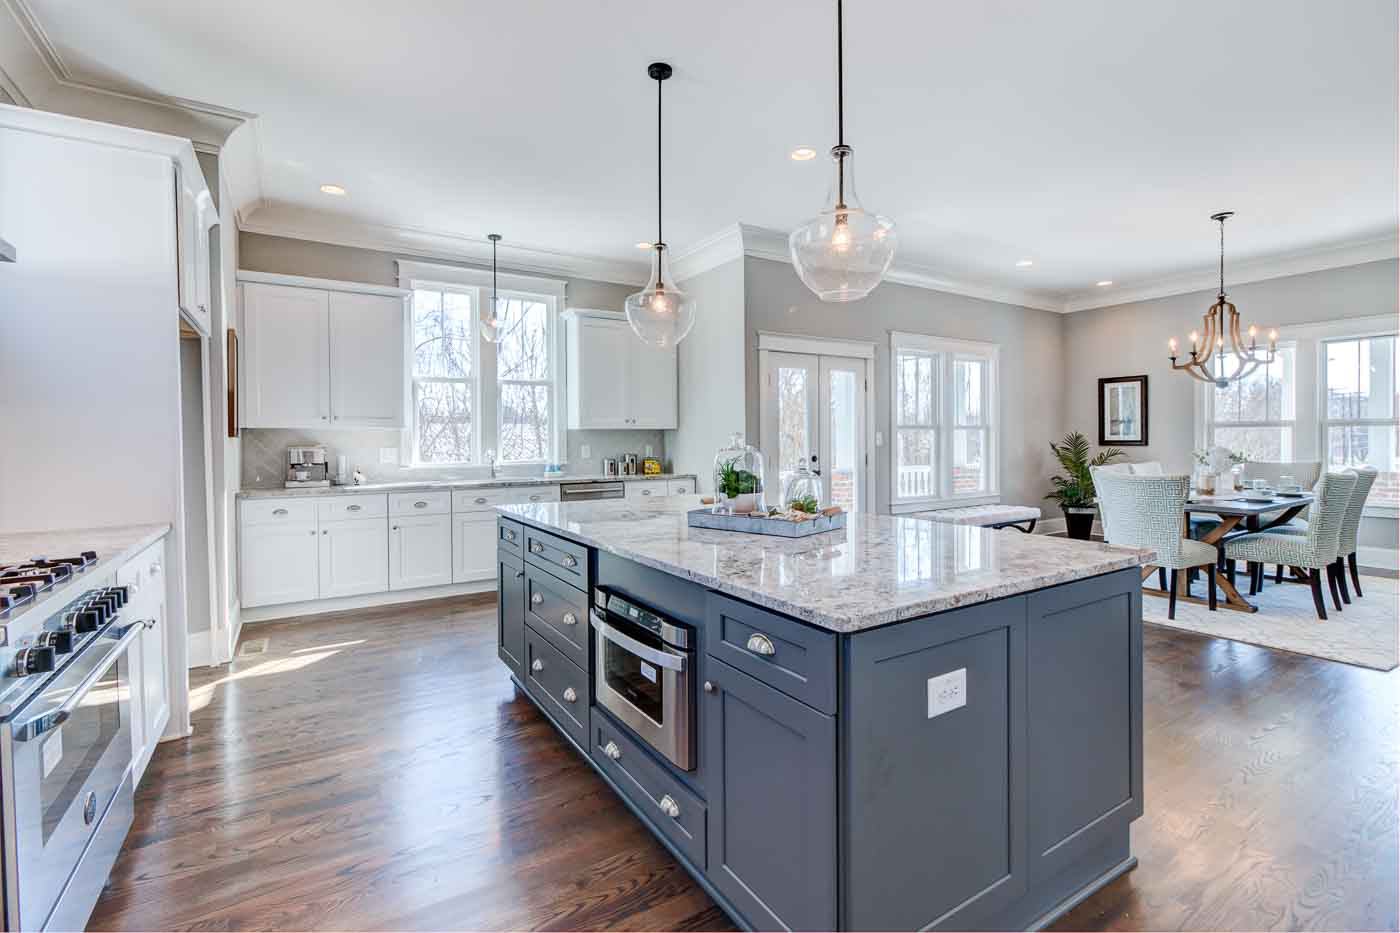 Stunning Durham New Construction Home For Sale – Dhinoy Studios